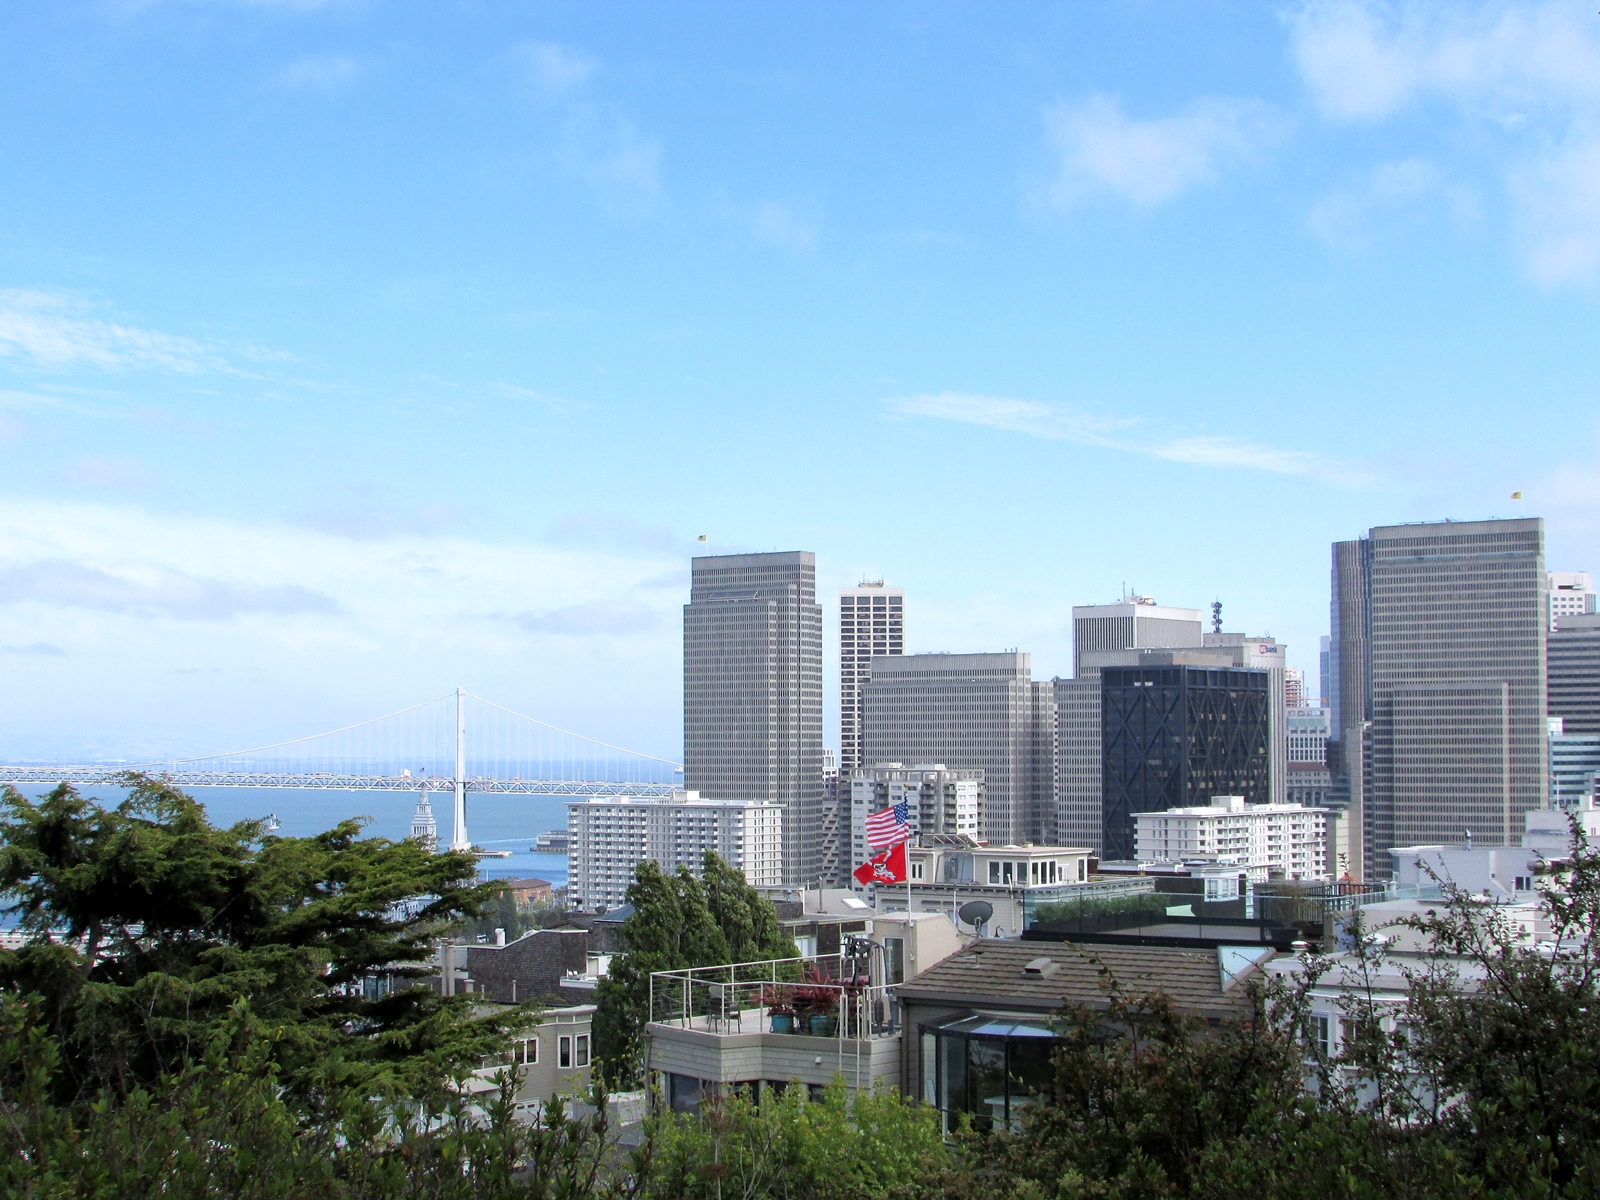 San Francisco - Blick vom Coit Tower - USA Rundreise - Roadtrip - Reisebericht - Travel Diary - Fashionladyloves